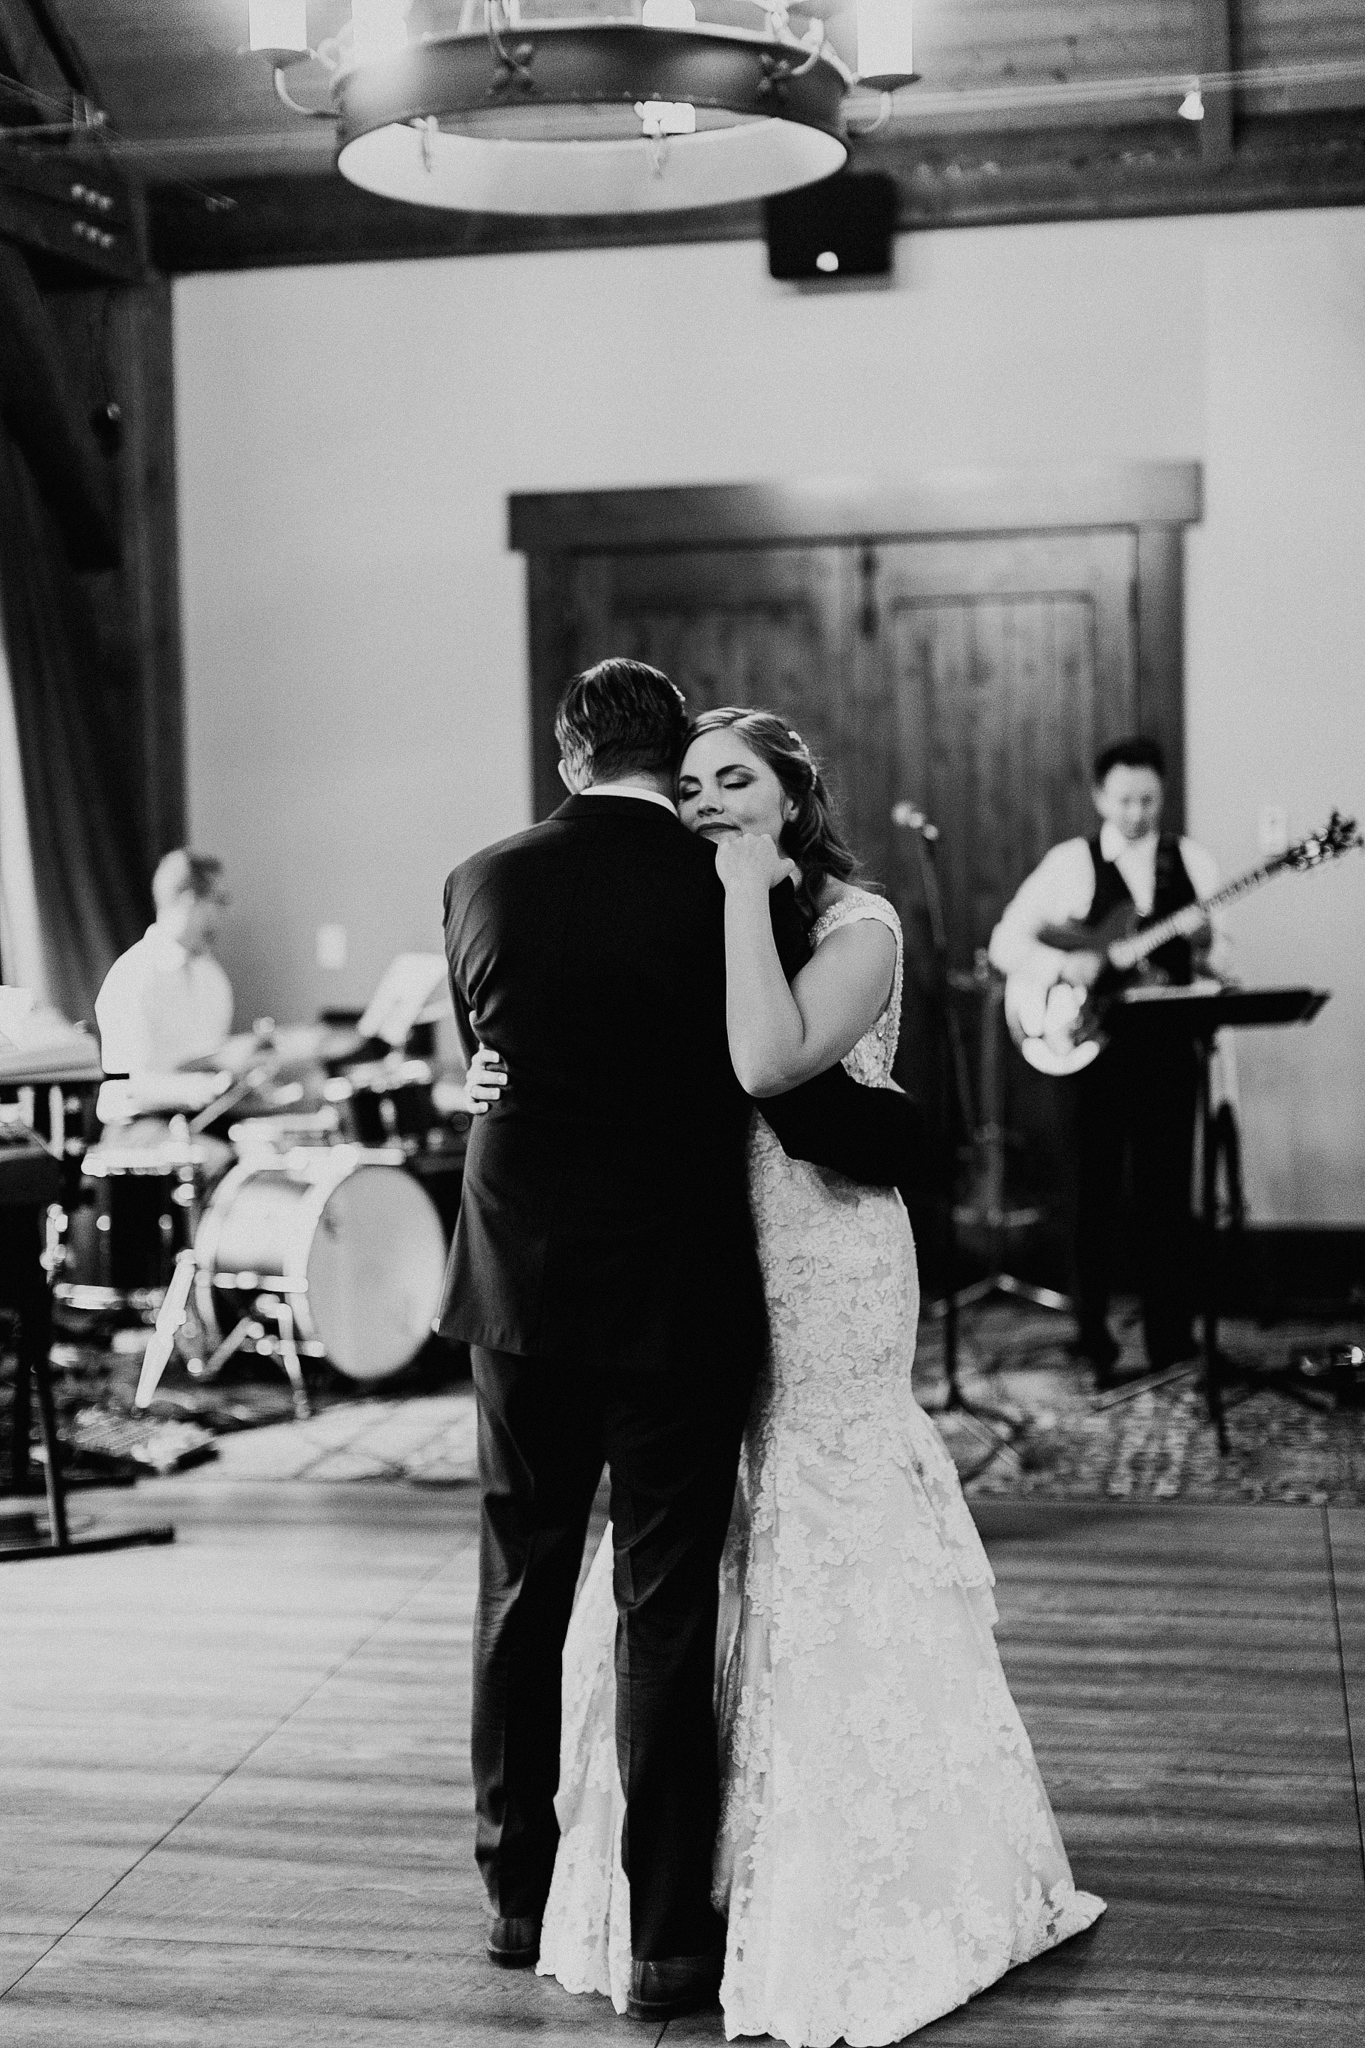 Bride and groom dance during wedding reception at Silvertip Resort in Canmore Alberta romantic wedding photograph MN